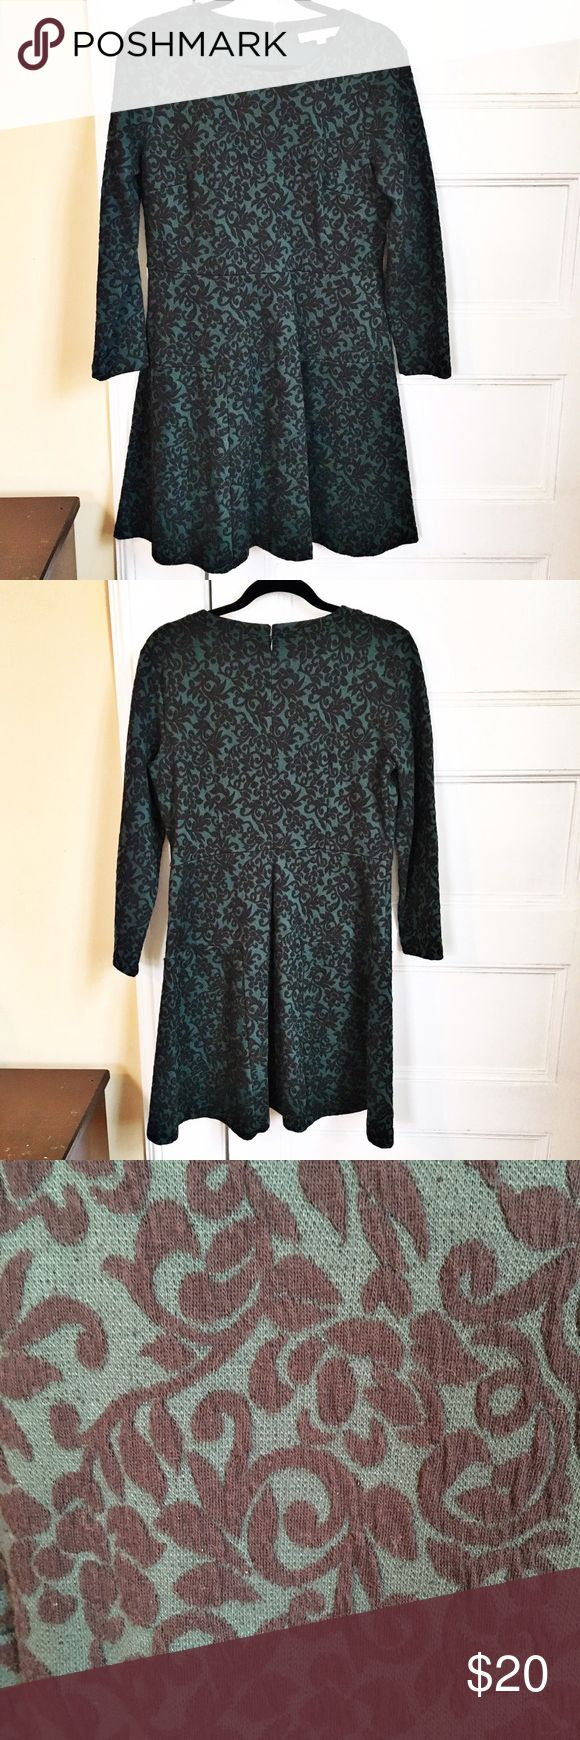 """Loft scroll jacquard dress size 12P Loft long sleeve fit and flare dress with trumpet skirt, deep green with black scroll pattern jacquard. Size 12 petite. 37"""" long and 18"""" from armpit to armpit. Excellent used condition. LOFT Dresses"""